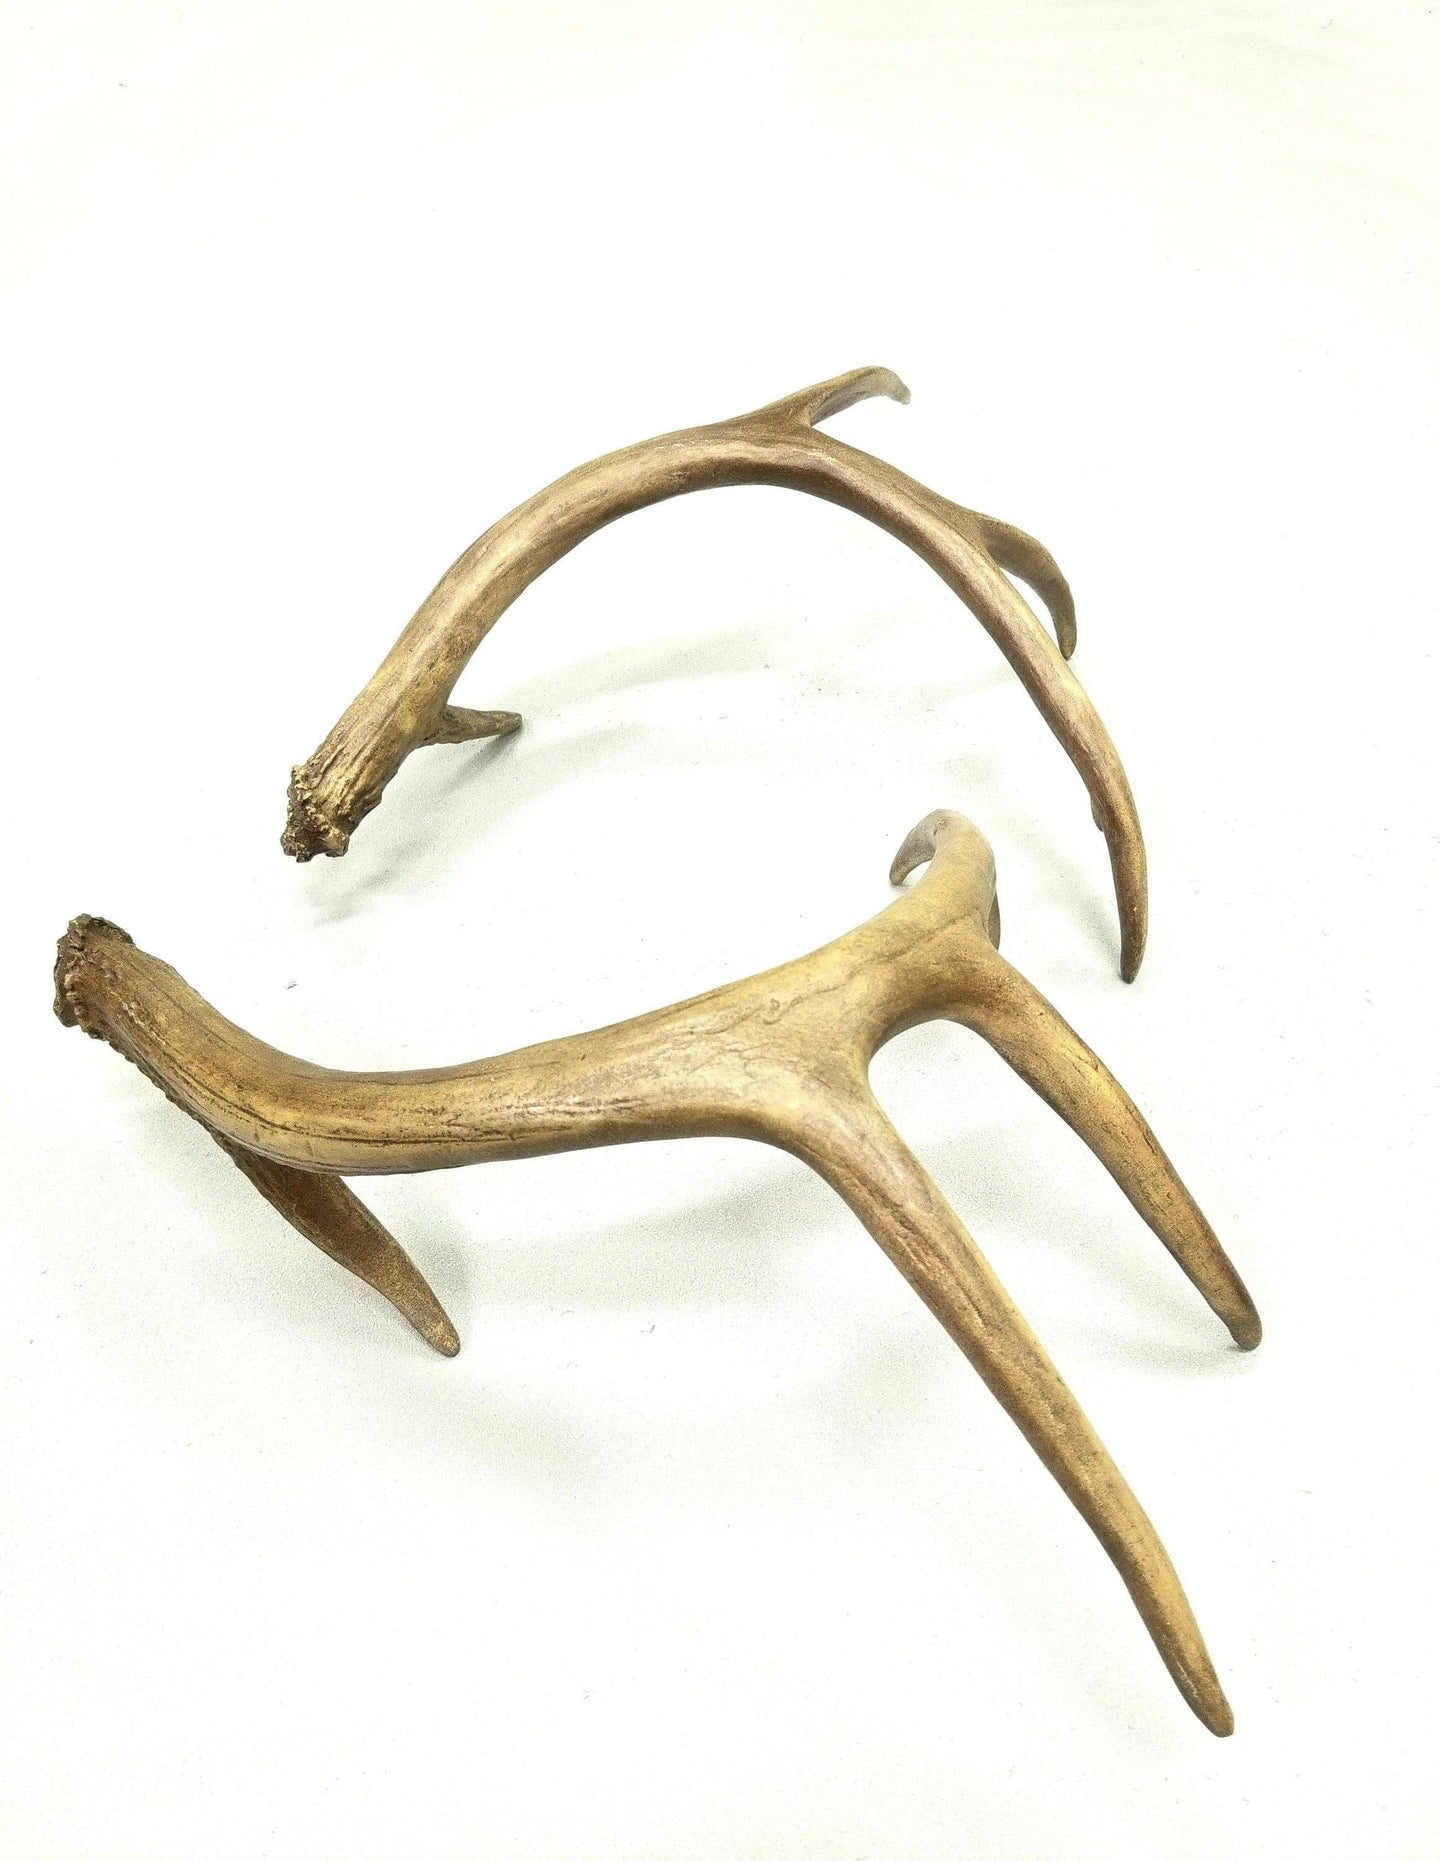 Pair Of Replica Large - Table Top Fake Antler Shed